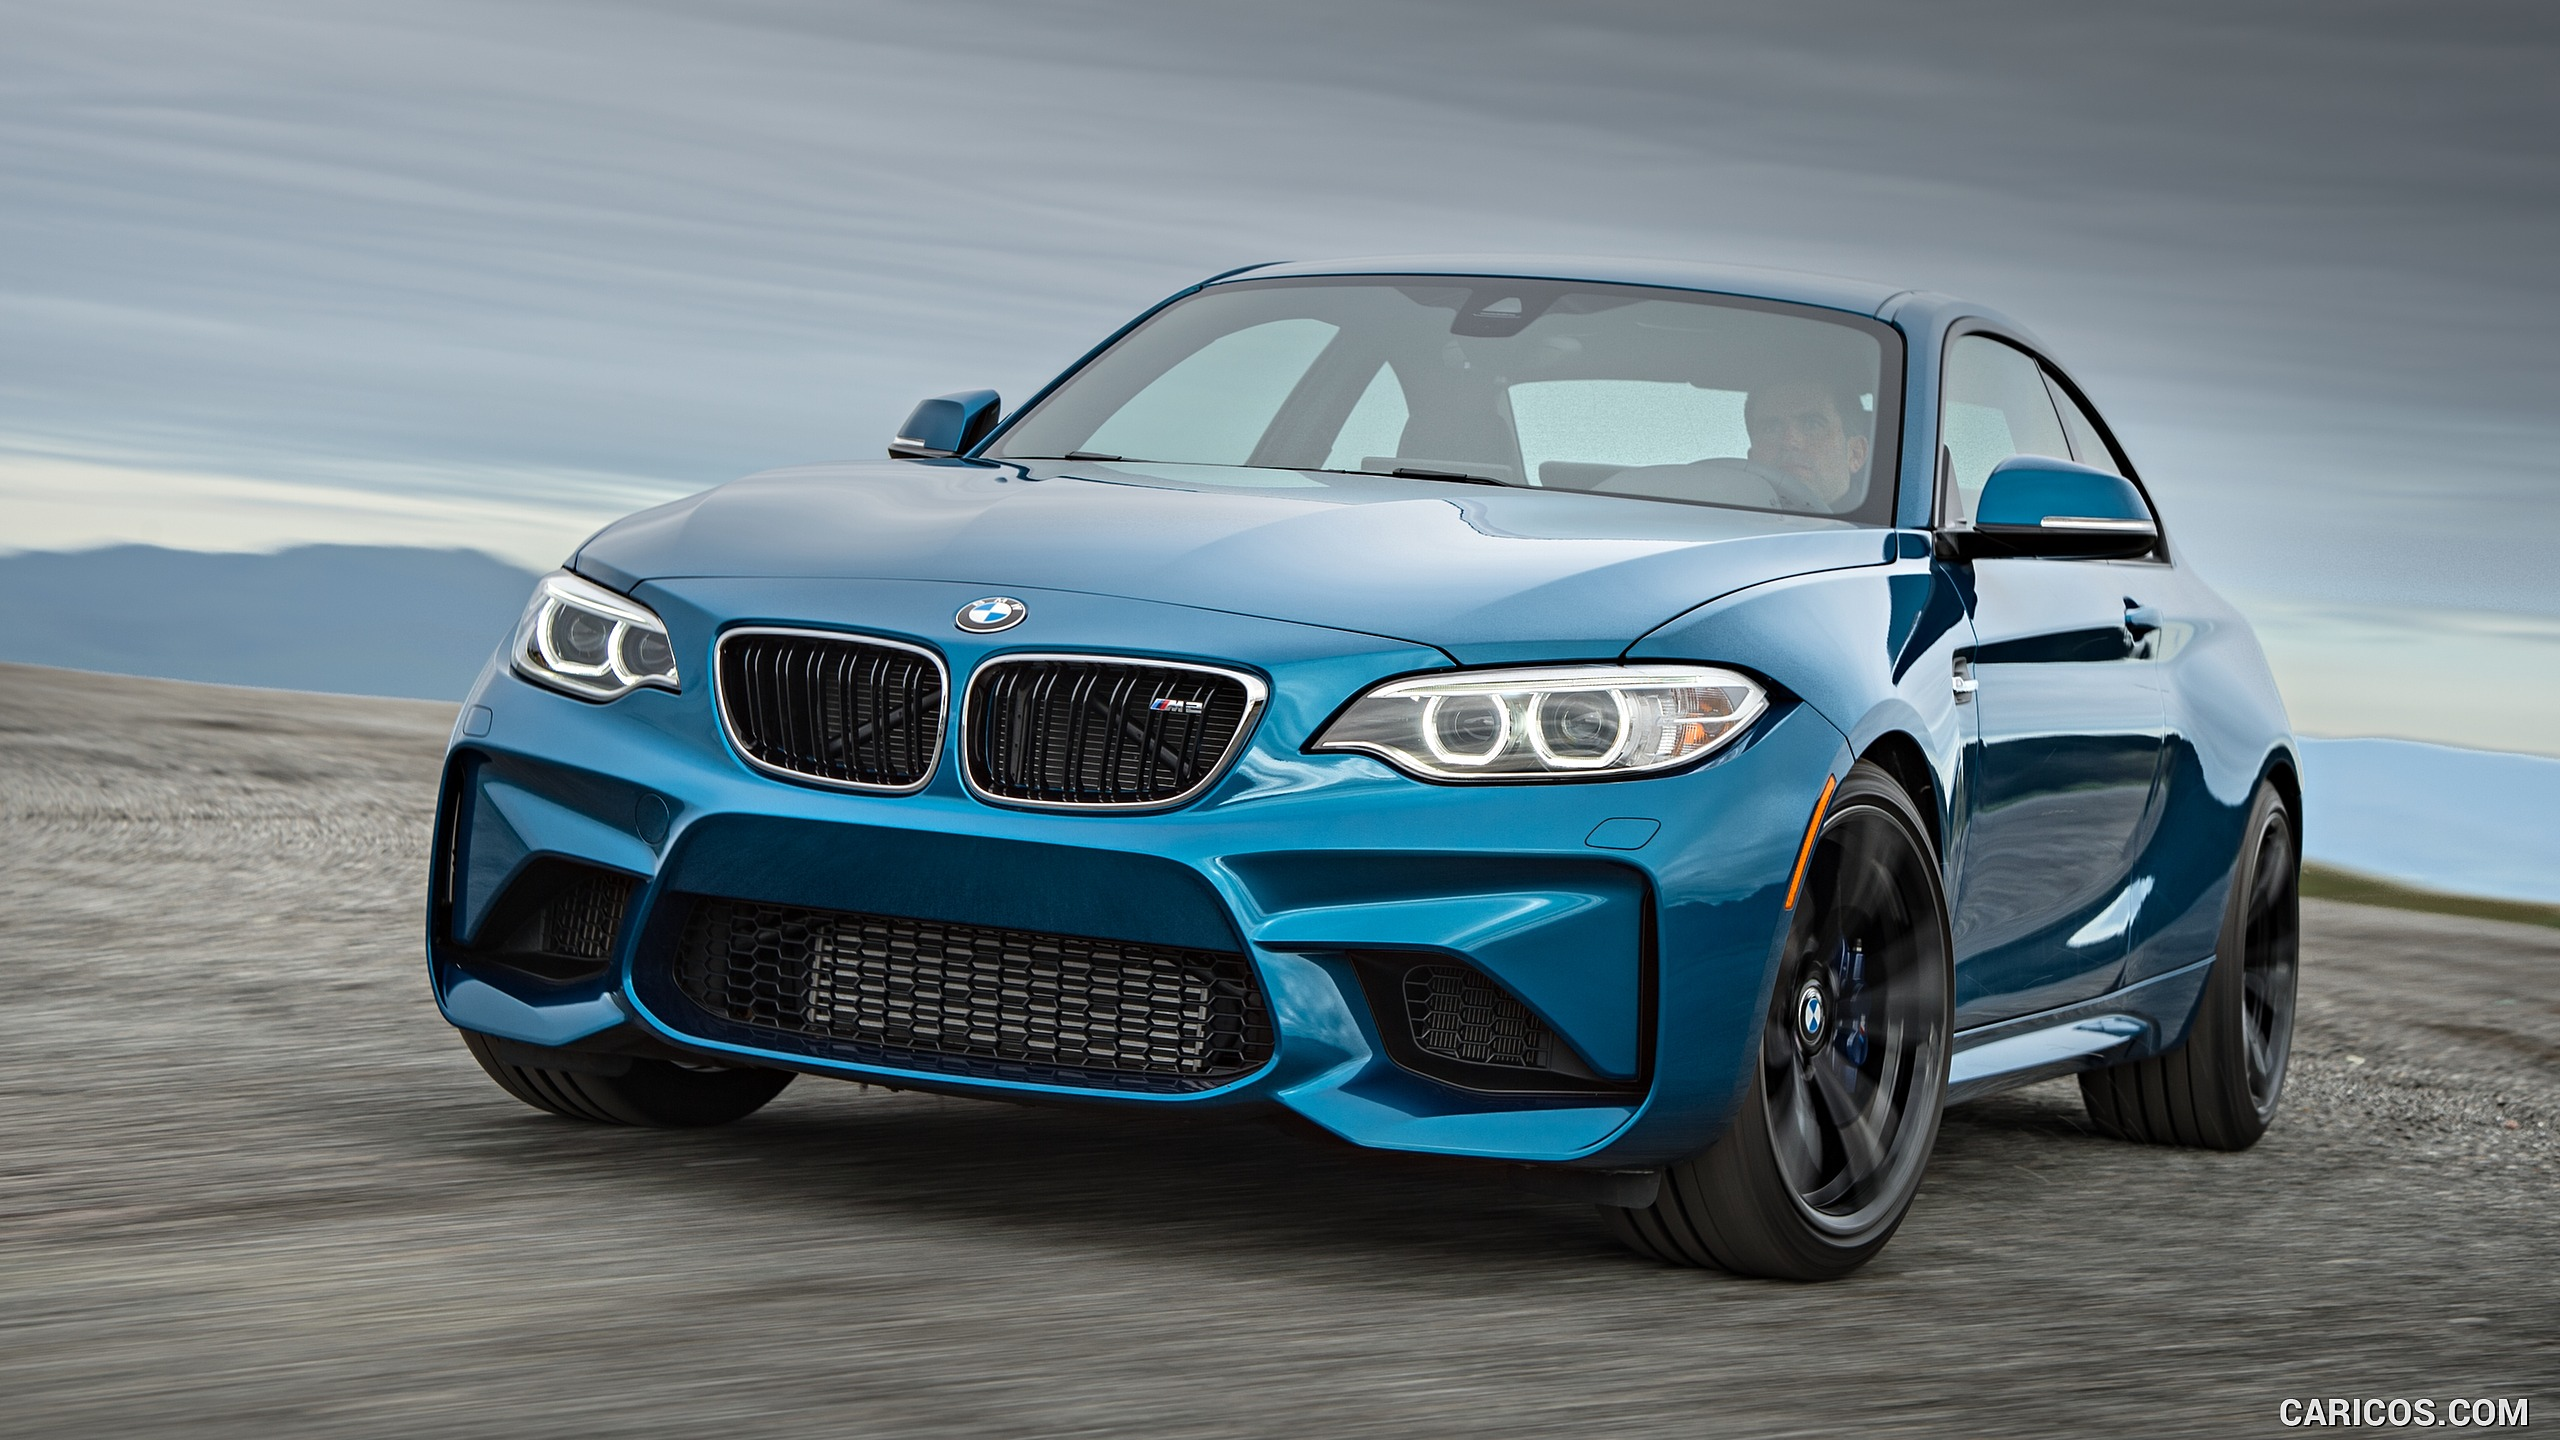 2560x1440 - BMW M2 Coupe Wallpapers 26